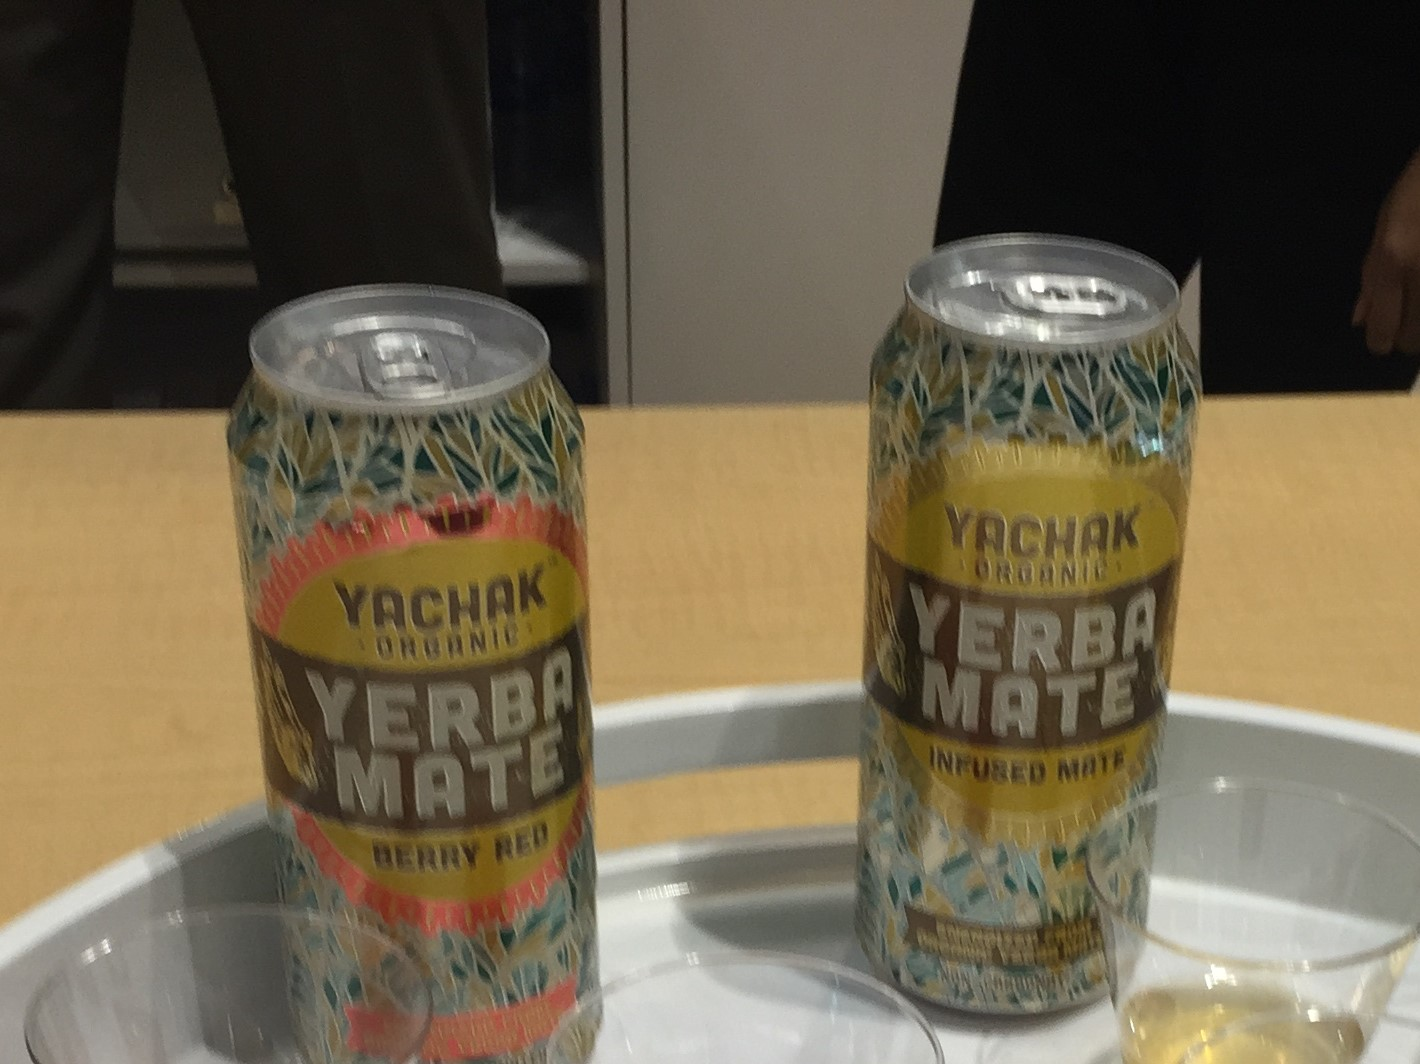 Virginia's Food & Beverages Blog: Top Non-Alcoholic Drinks Trends